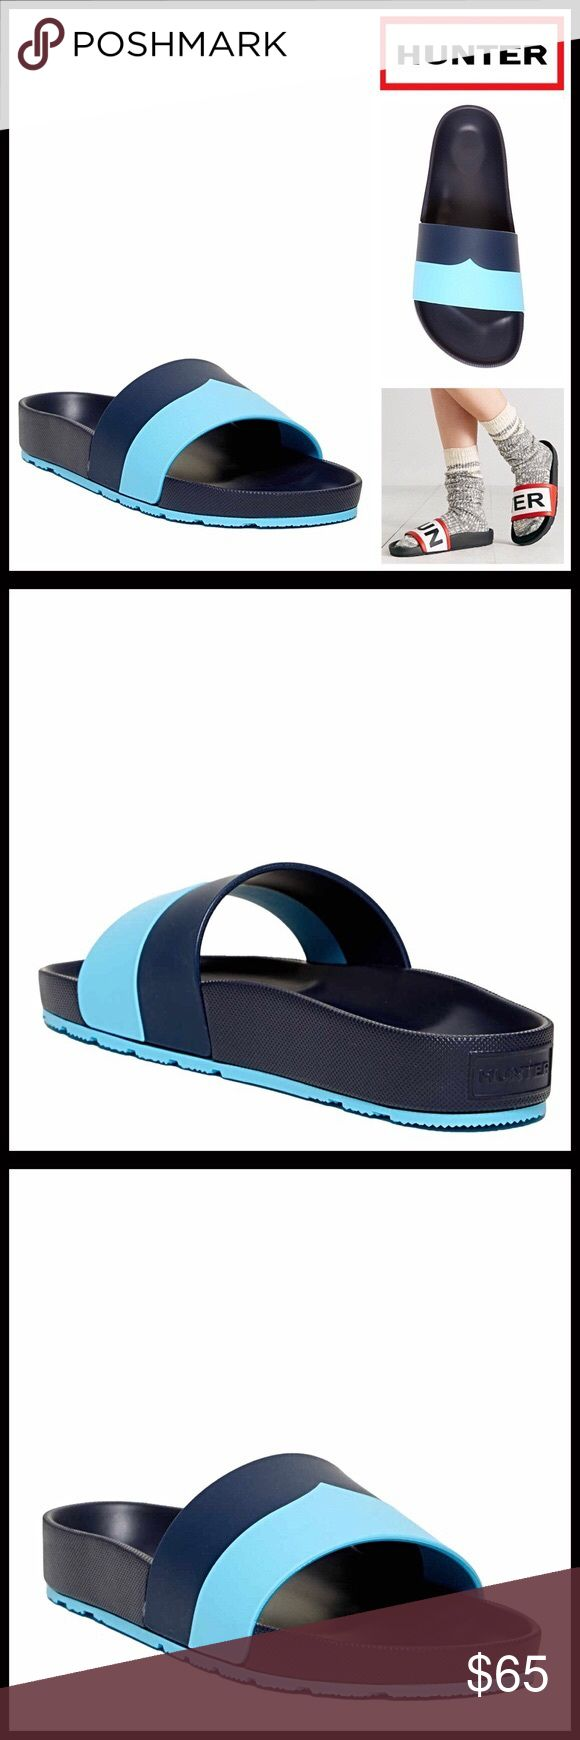 "HUNTER ORIGINAL SANDALS Flats Slides HUNTER ORIGINAL SANDALS Flats Slides   SIZING: True to size, whole sizes only, if between sizes order down, tagged size 7, fits sizes 7-7.5   MADE IN ITALY   COLOR: Blue, Navy   ABOUT THIS ITEM   * An amazing water resistant style!   * Open toe   * Wide colorblock strap vamp   * Slip on   * Molded contoured footbed   * High quality & well made   * Approx 0.75"" high heel & 0.5"" platform  MATERIAL EVA upper & sole ITEM#  ❌NO TRADES❌ ✅BUNDLE DISCOUNTS ✅…"